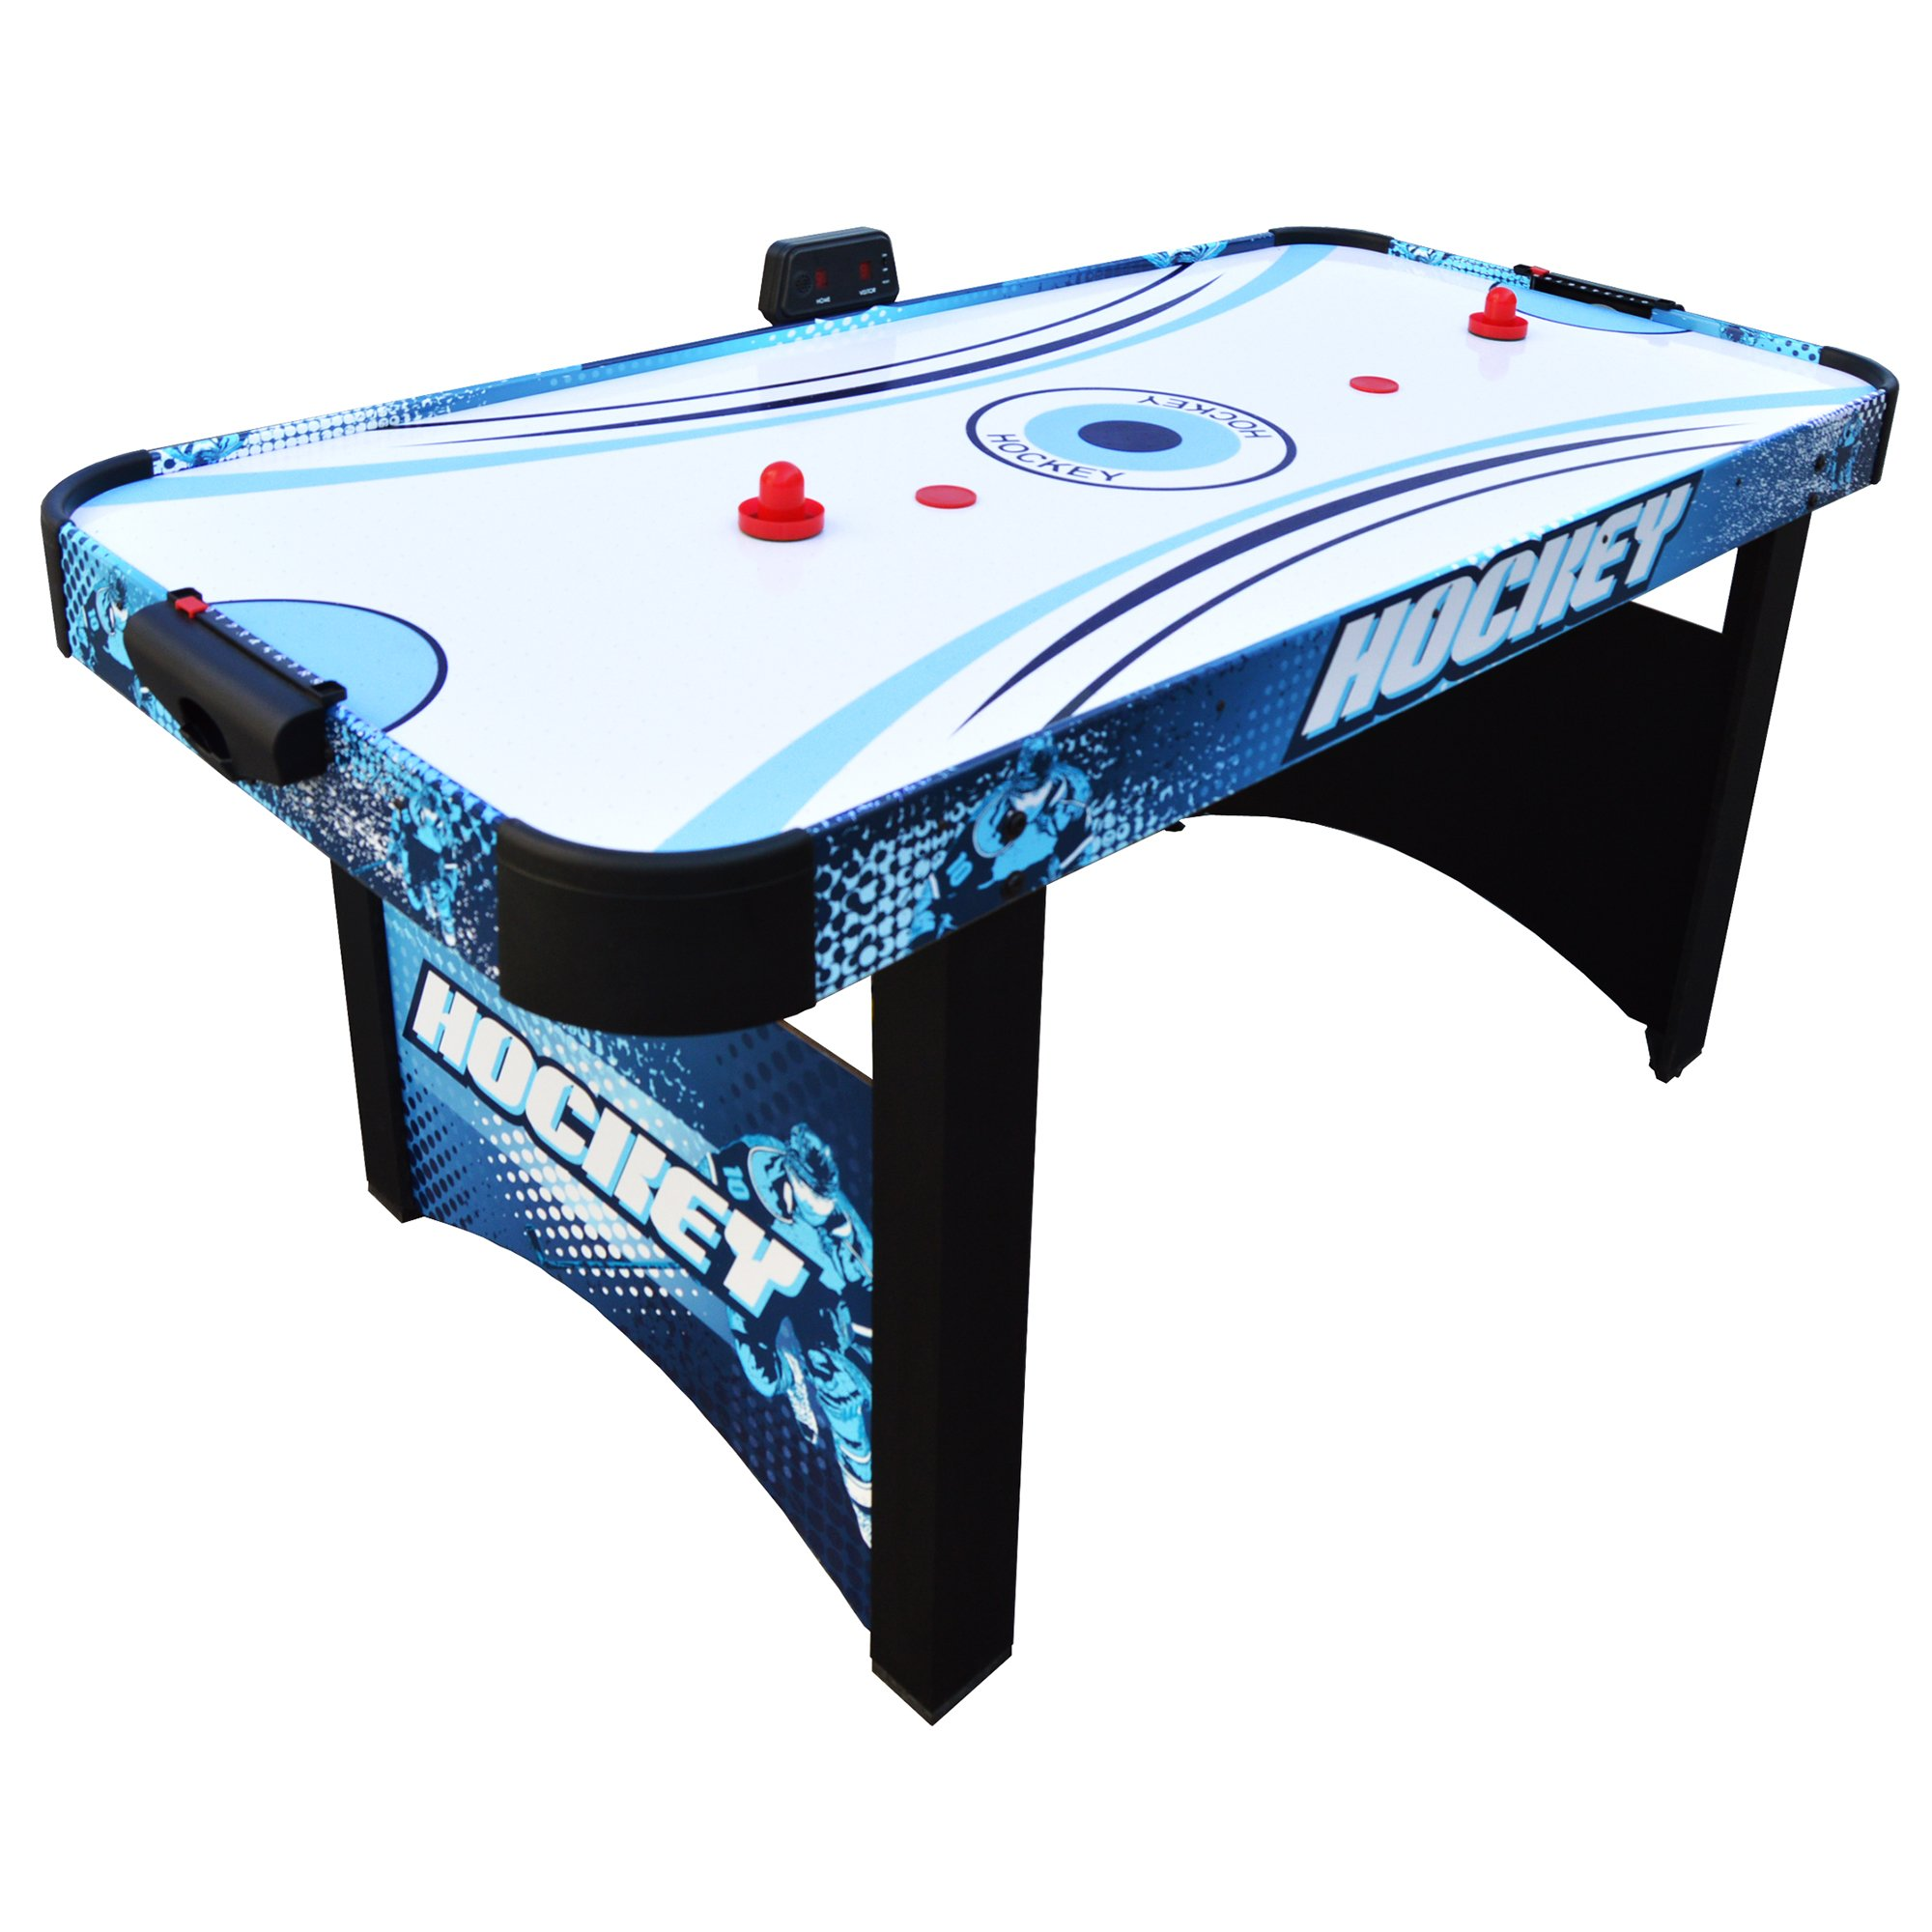 Hathaway Enforcer Air Hockey Table 5.5-ft for Kids with Electronic Scoring for Family Game Rooms - Blue/White by Hathaway